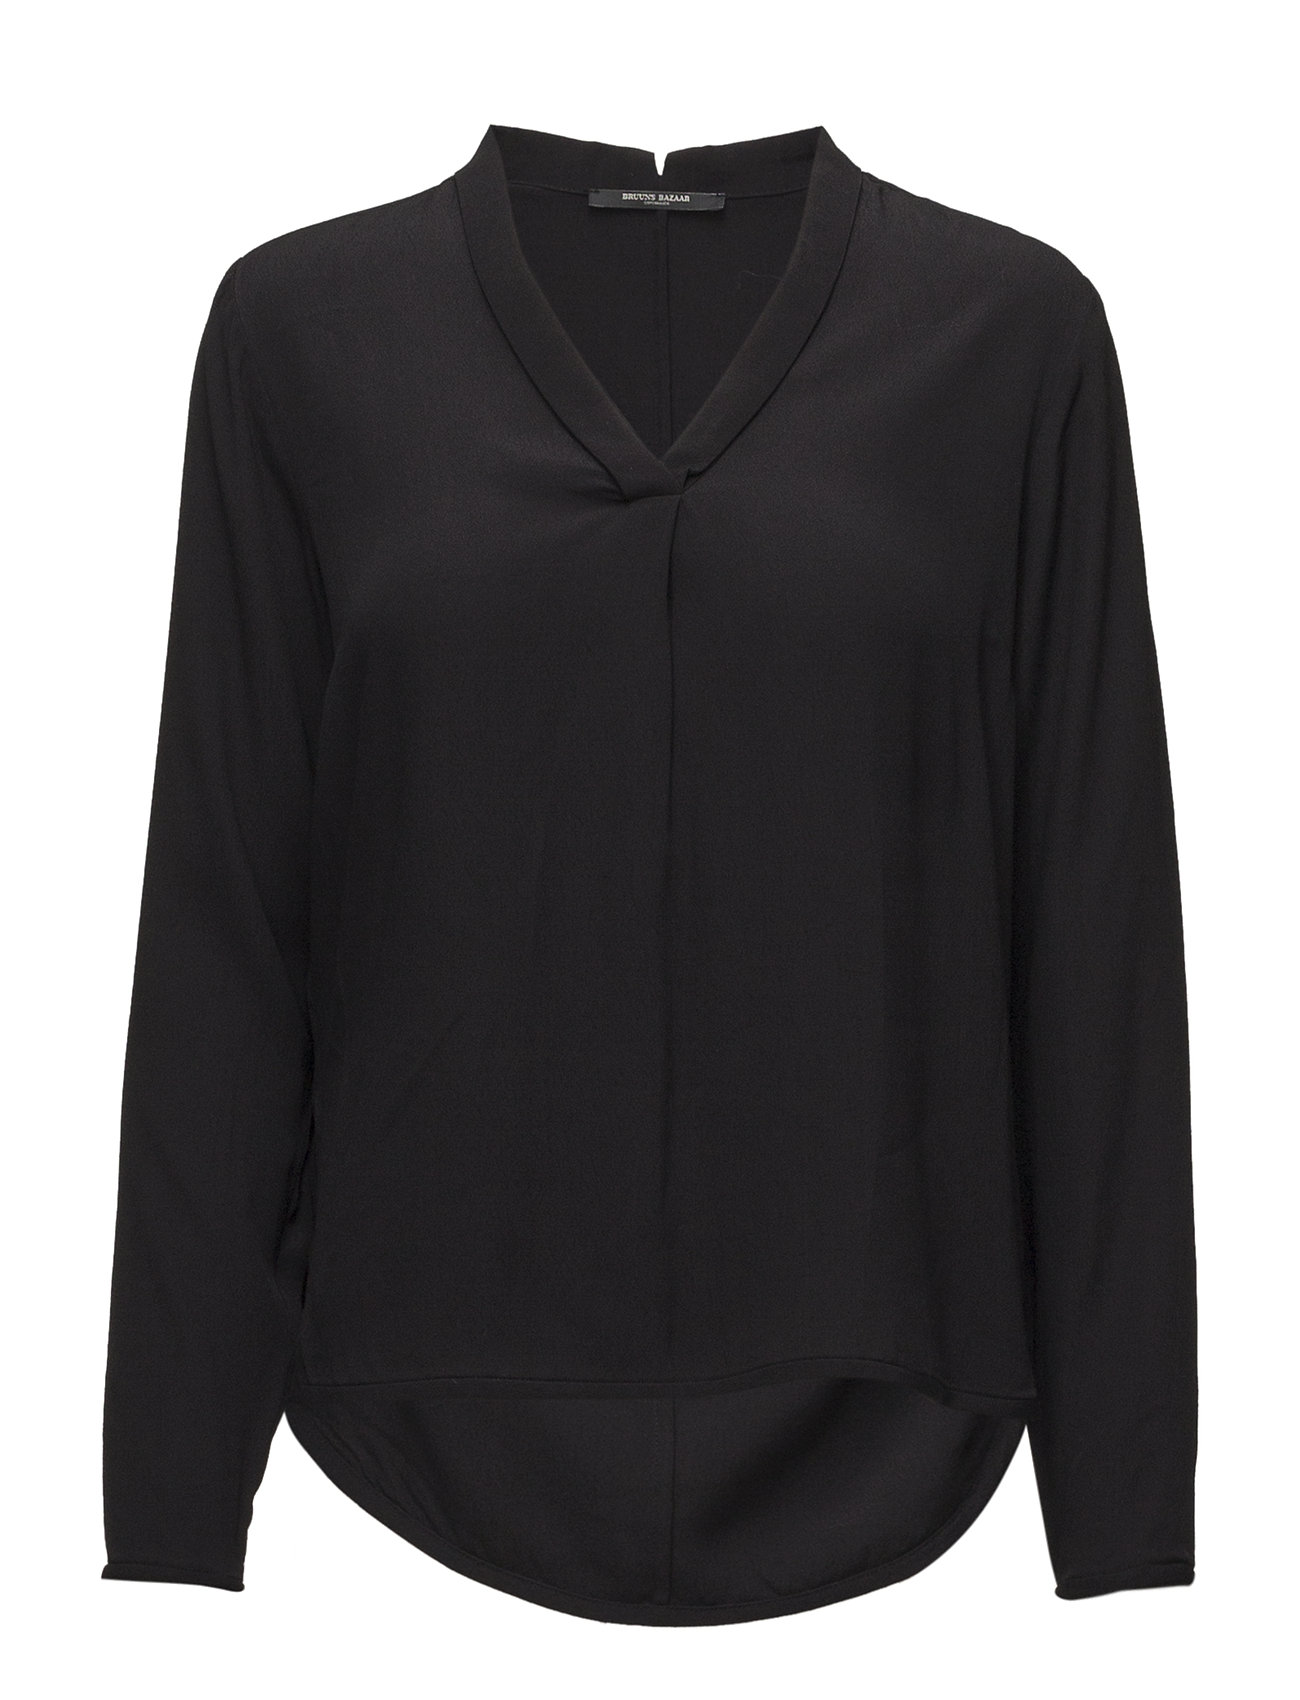 Bruuns Bazaar Liva Top - BLACK